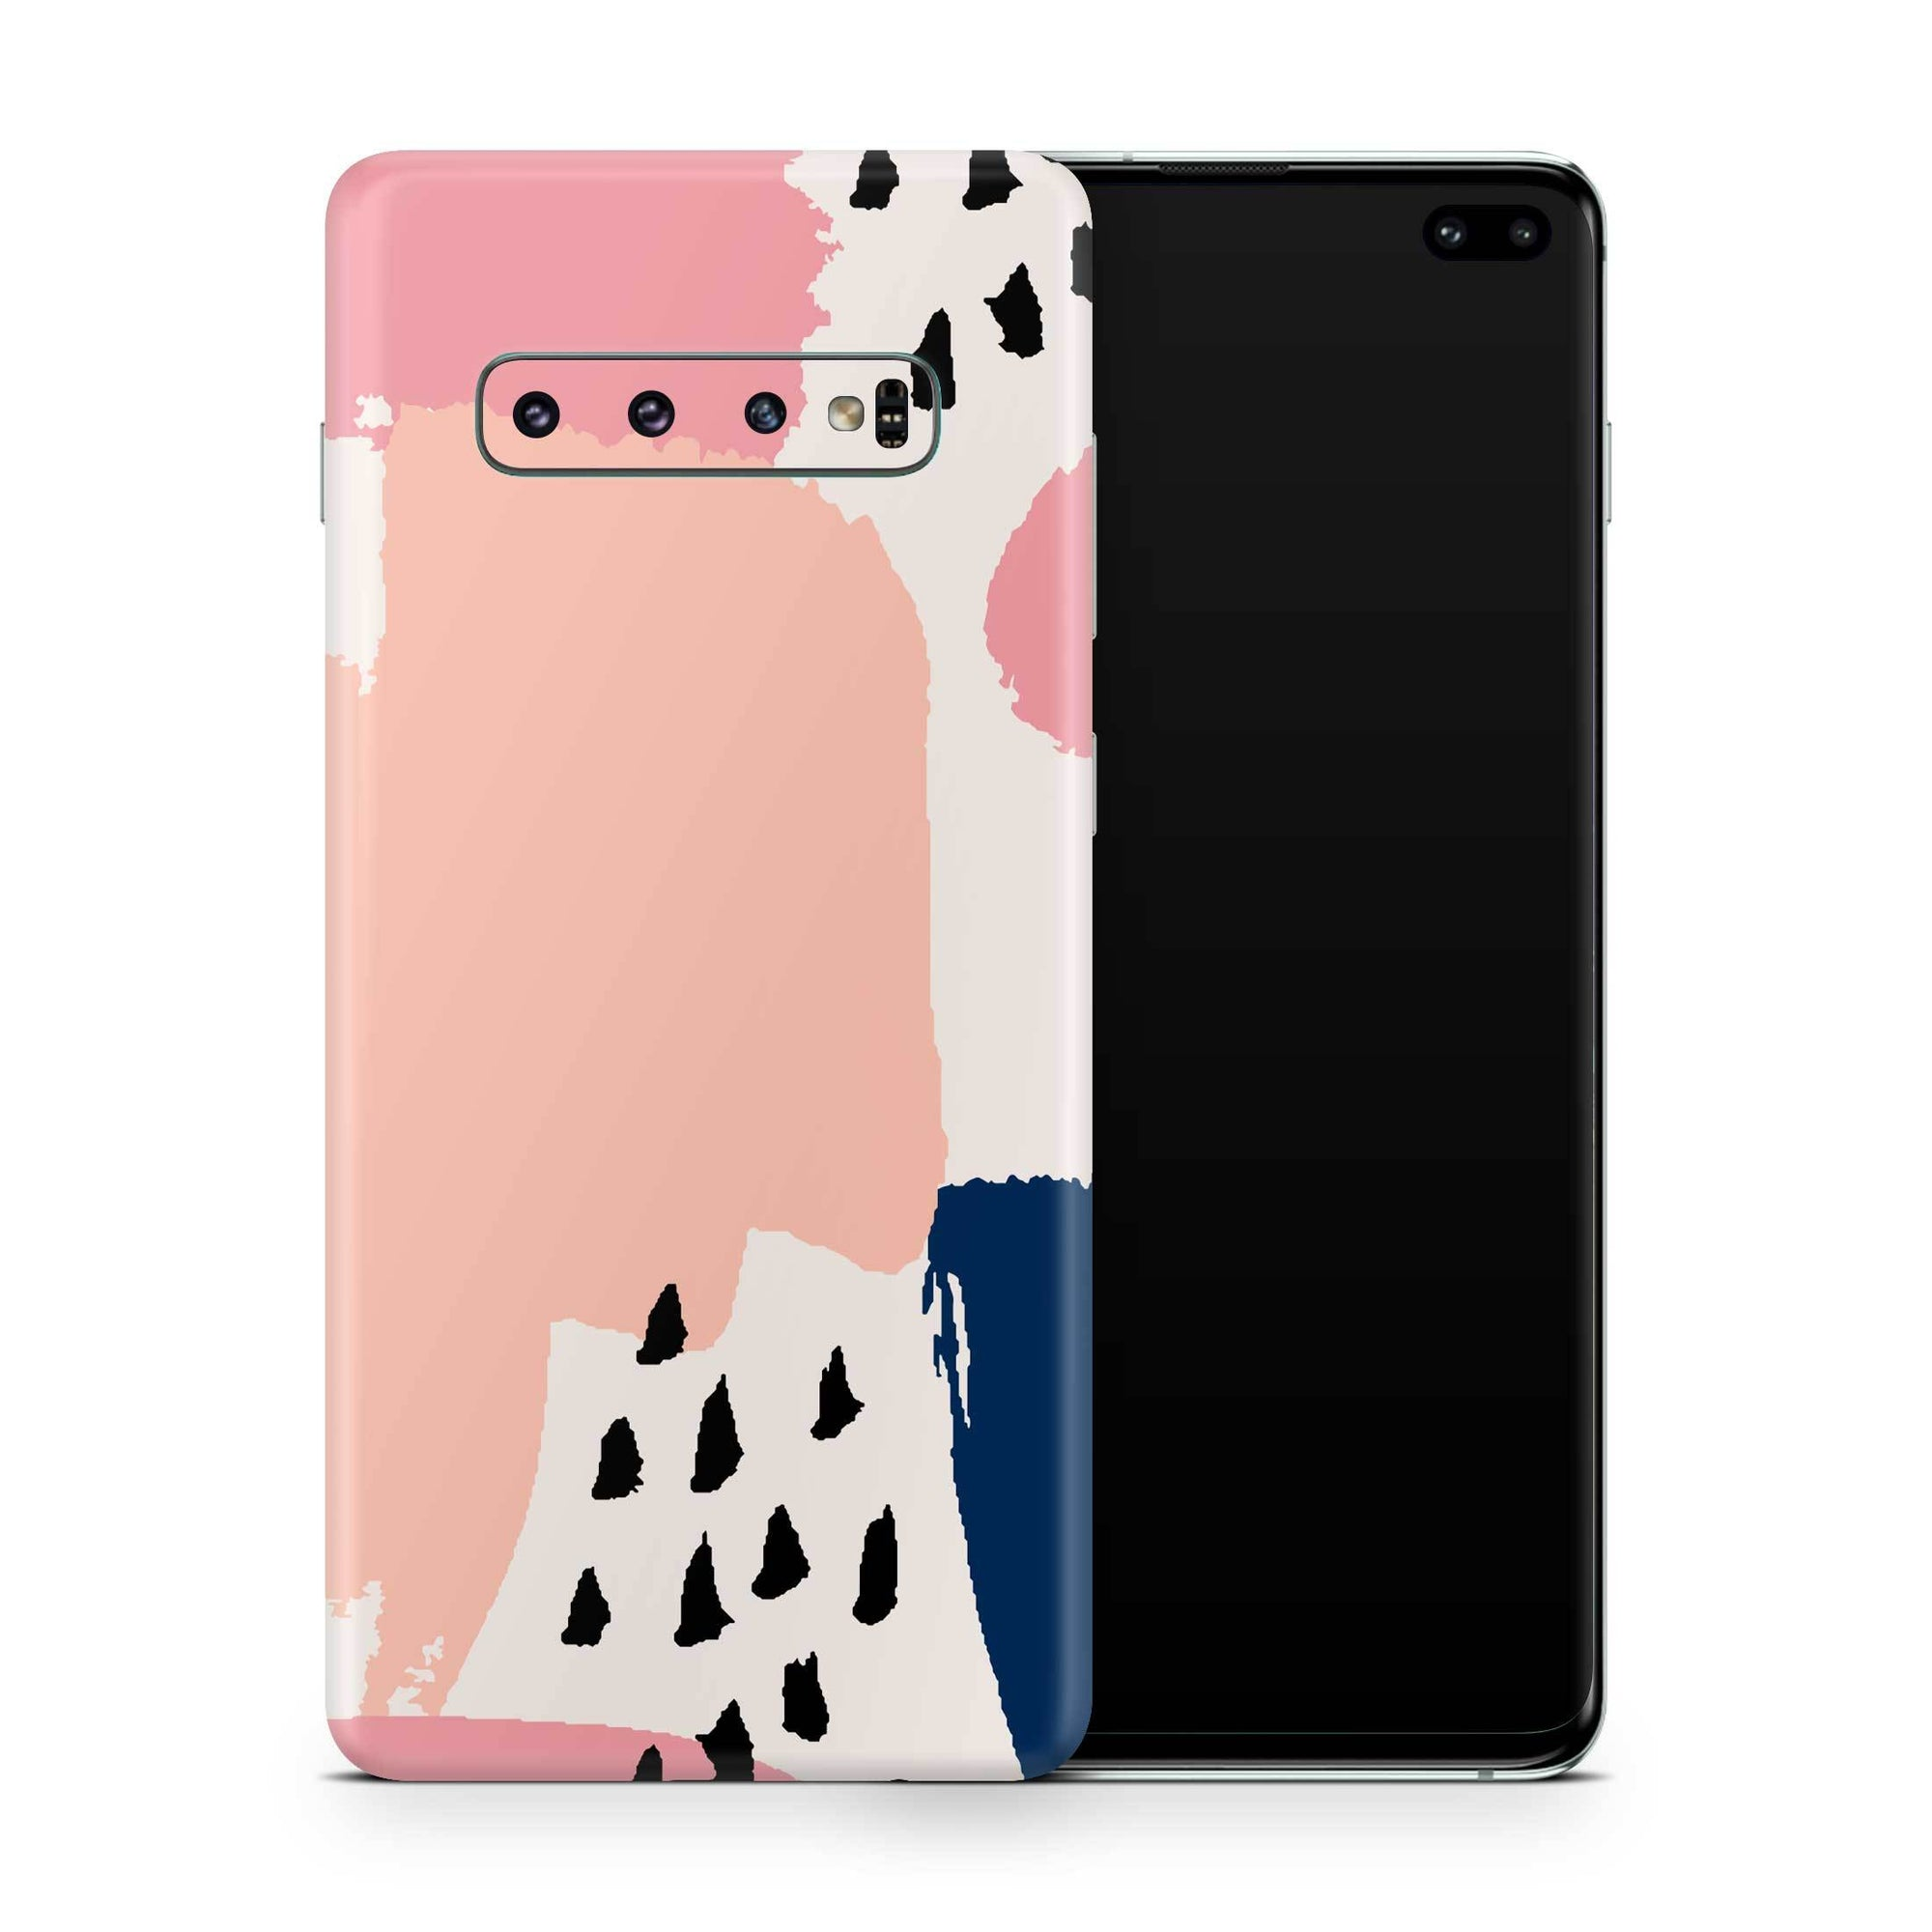 Miami Vice Galaxy S10 and S10 Plus and S10e Skin